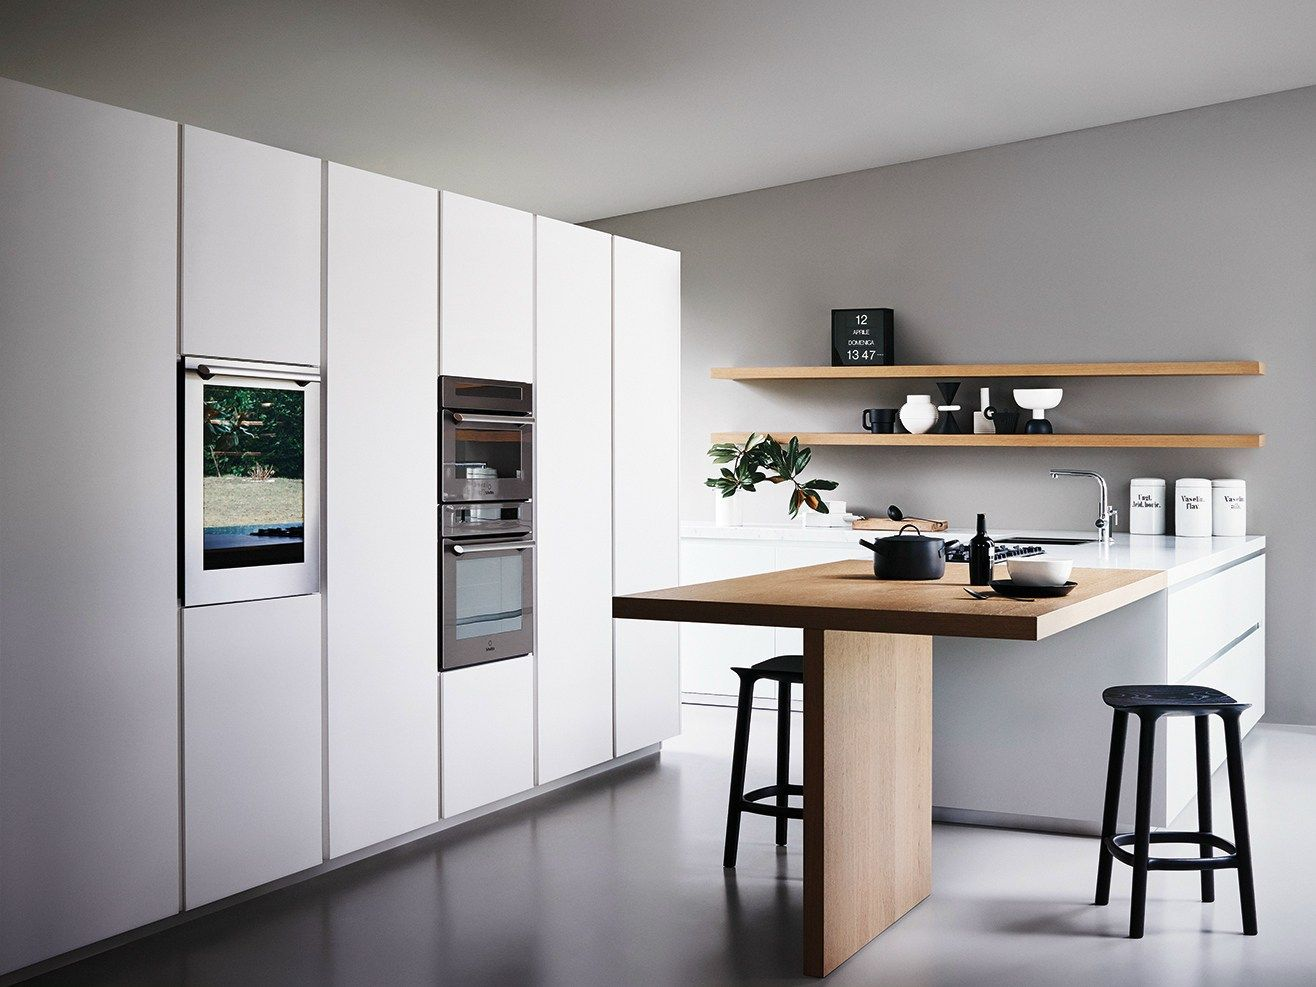 Fitted kitchen with island MAXIMA 16.16 - COMPOSITION 16 by Cesar